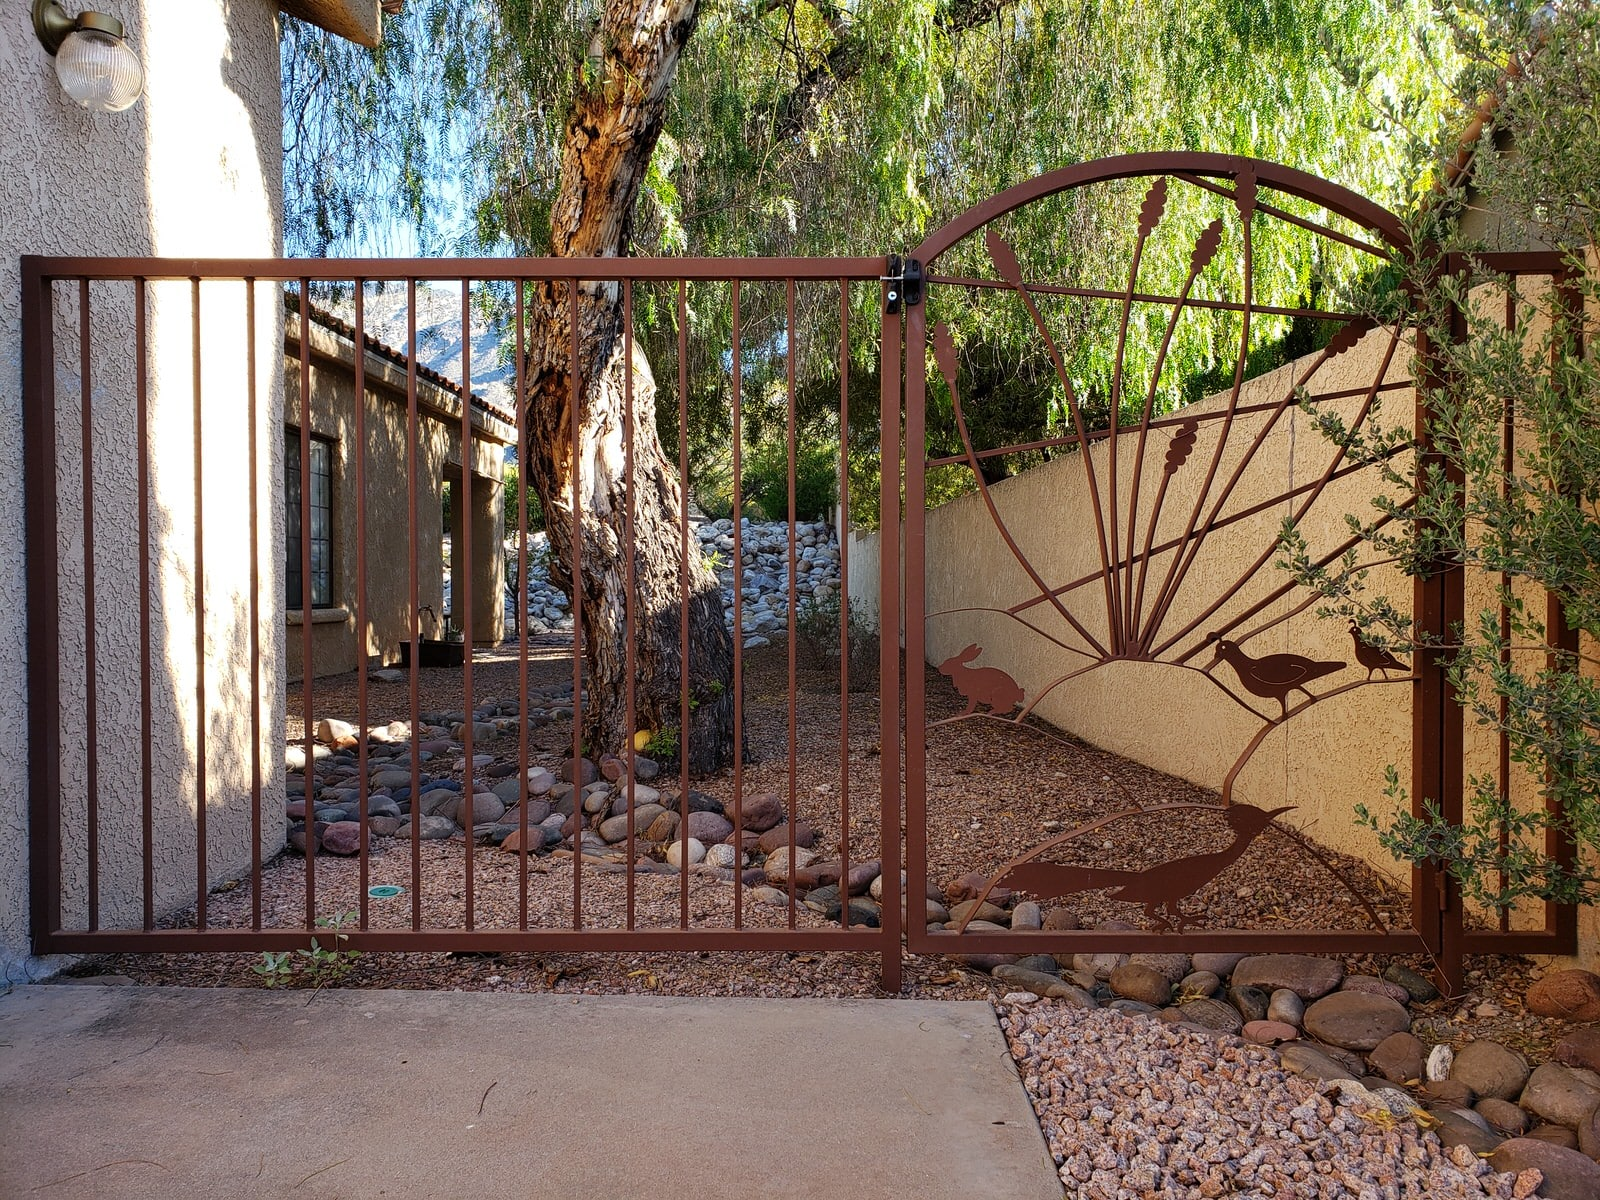 Wrought iron gate and fence with southwestern motifs, like roadrunner, rabbit, quail, sun rays and ocotillo 073941